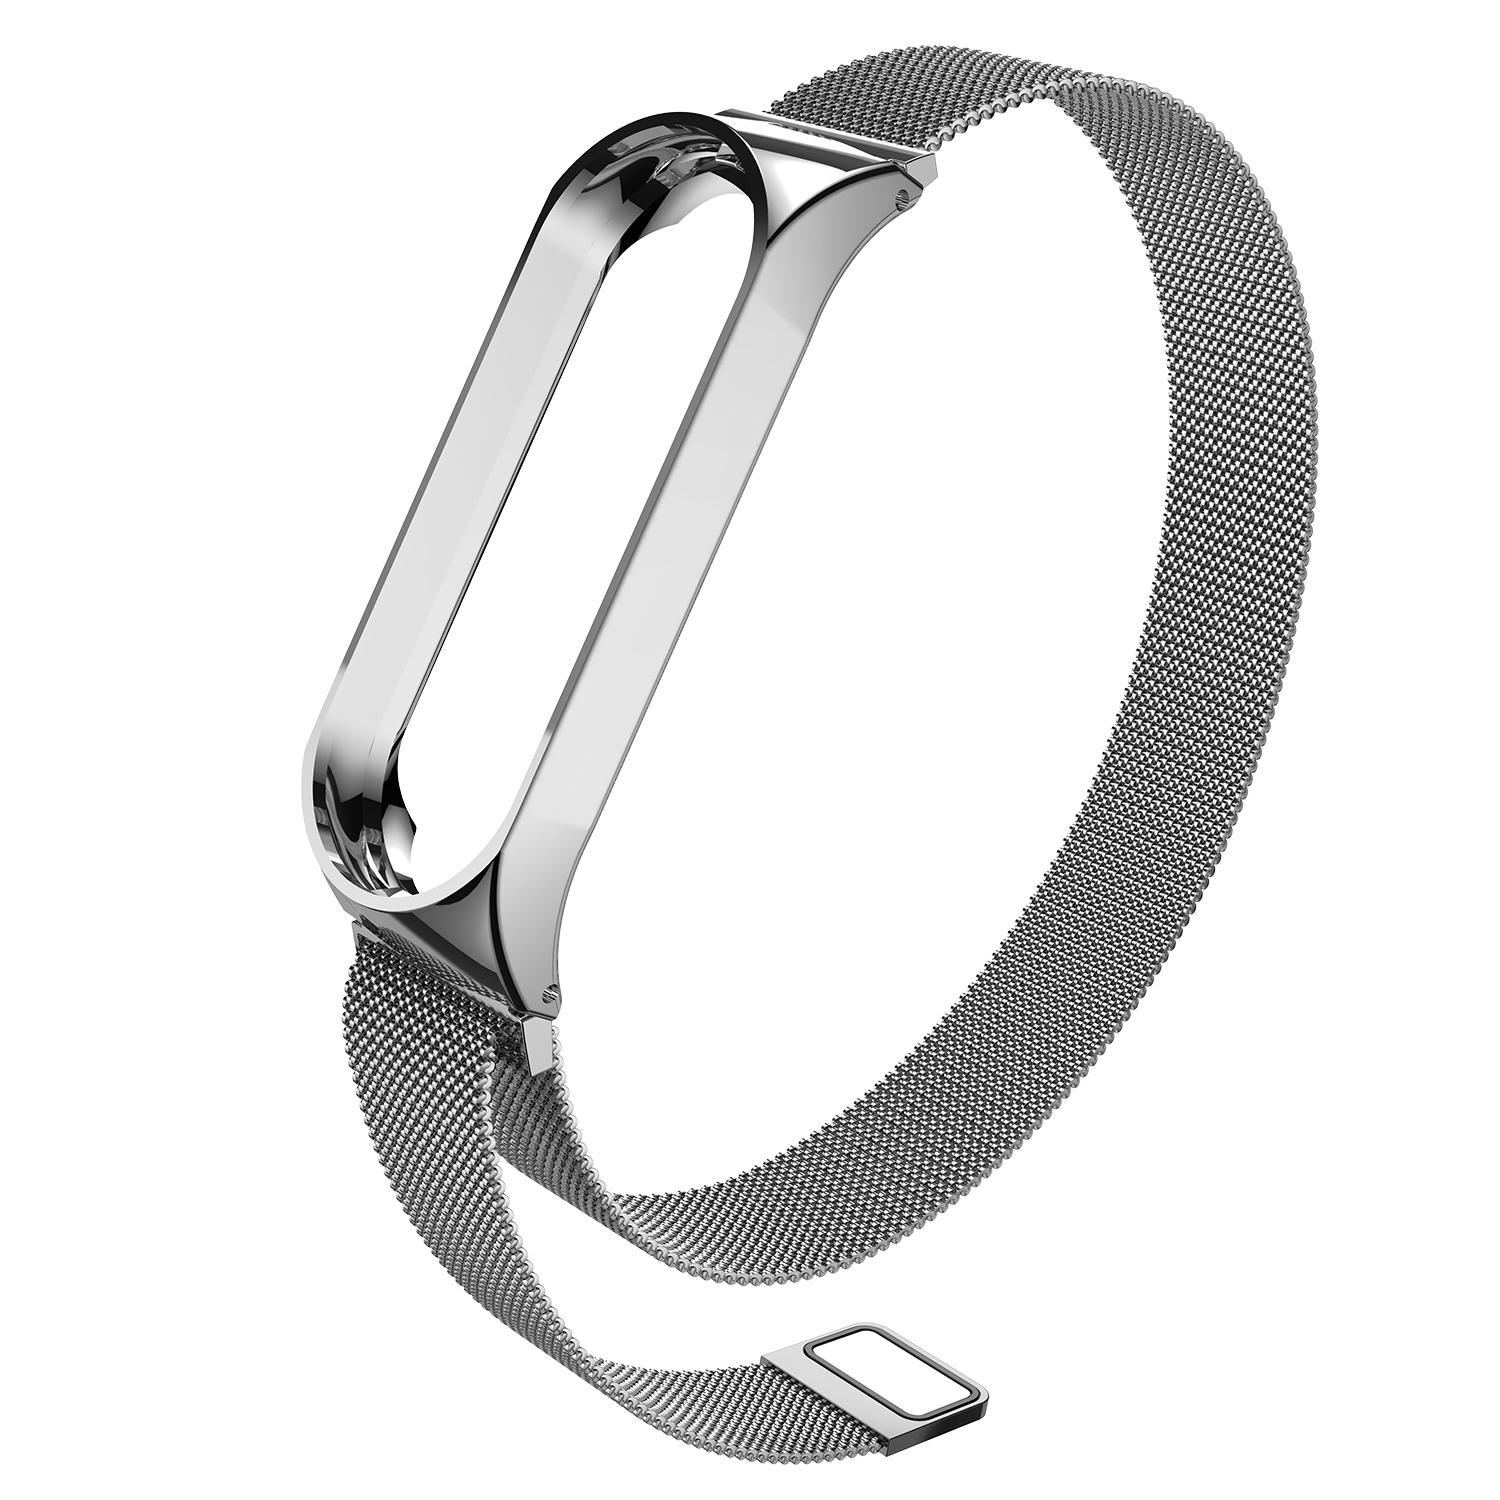 Fashion Milanese Style Magnetic Loop Clasp Replacement Wristband Strap Bracelet Smart Band Accessories for Xiaomi Mi Band 3 (Black/Silver) - intl